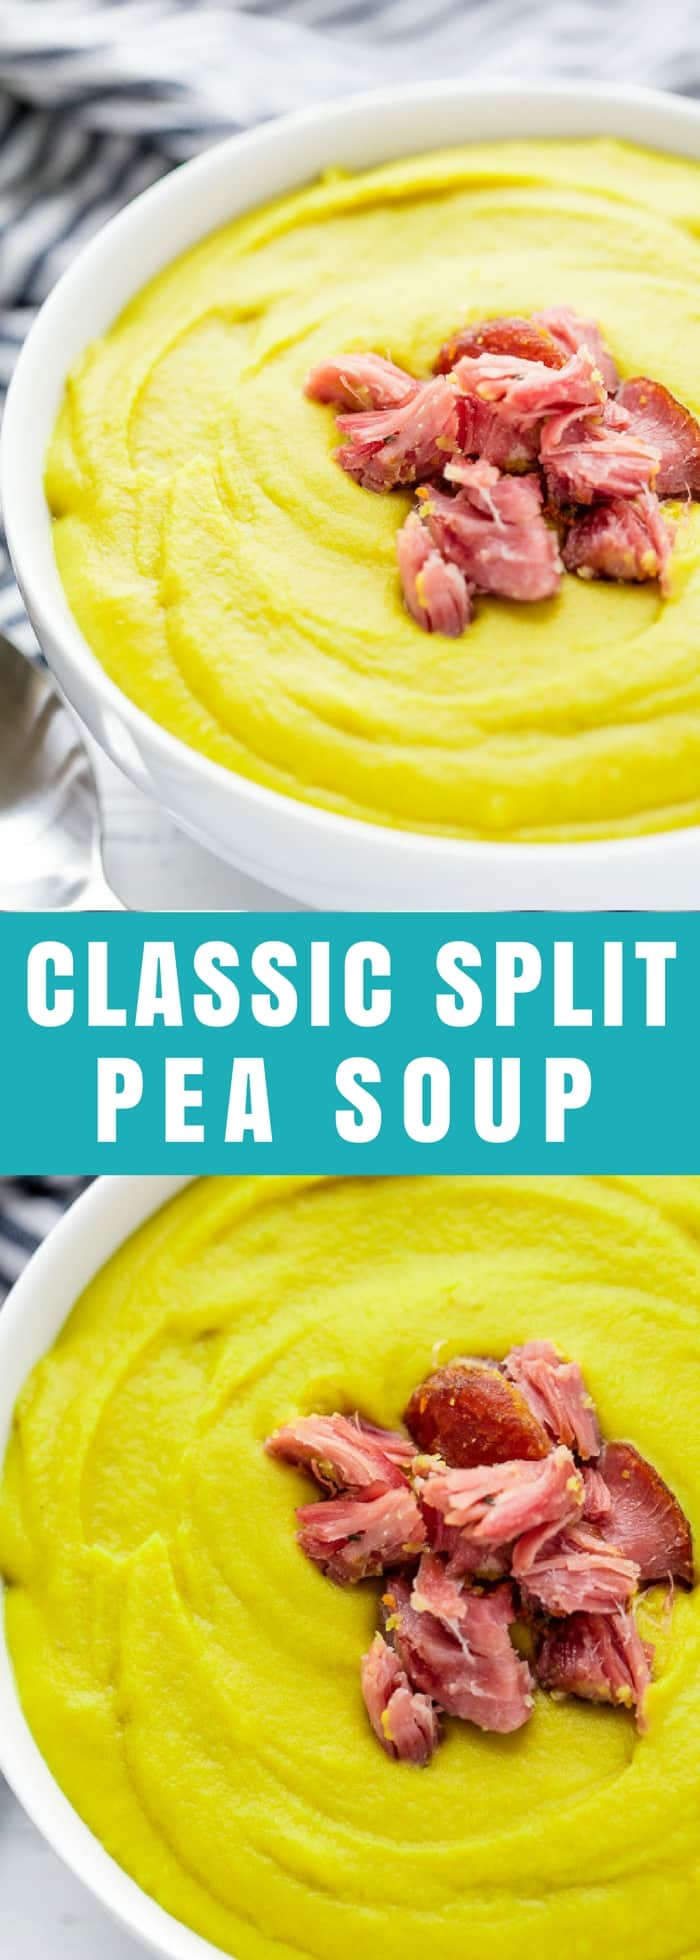 Split Pea Soup is a classic American soup made from dried split peas. It's good for you, packed full of nutrients, and it still tastes like total comfort food.